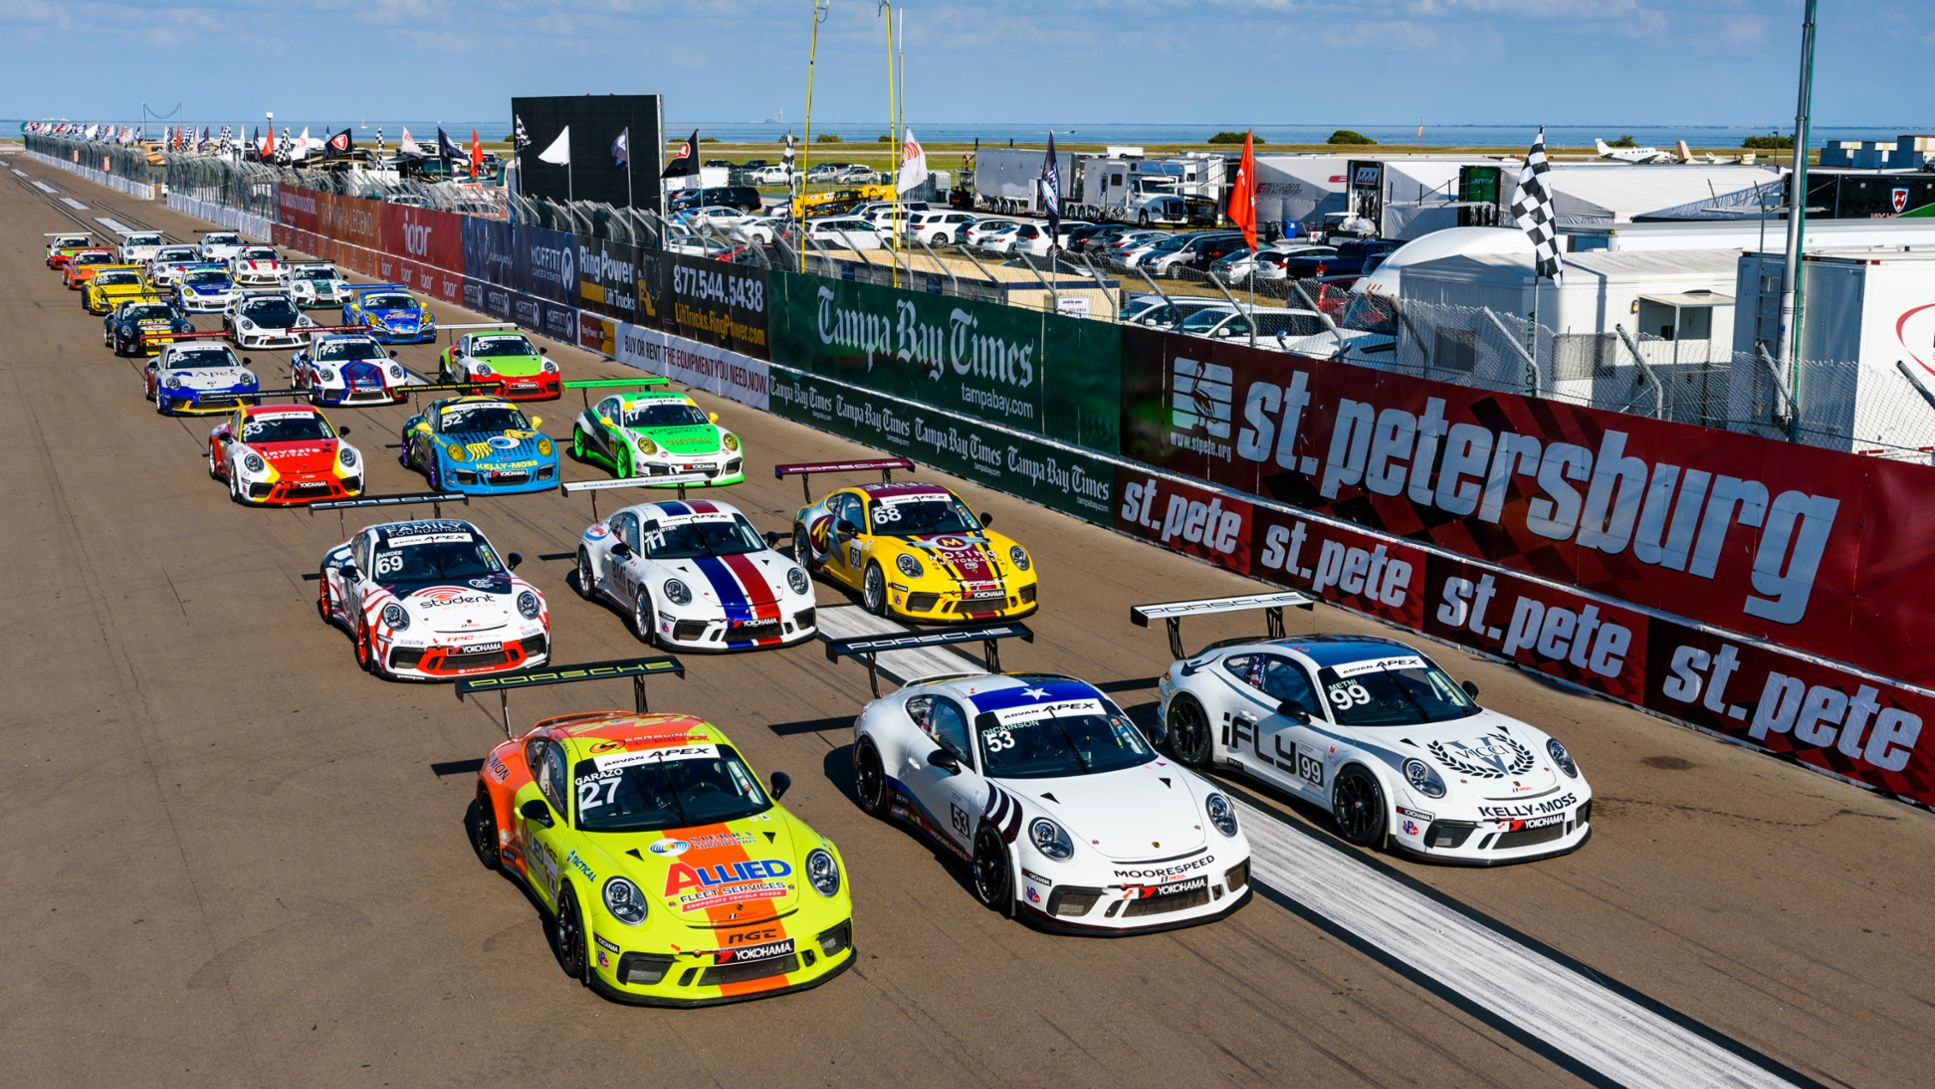 2020 IMSA Porsche GT3 Cup Challenge USA by Yokohama Full Field Photo, PCNA